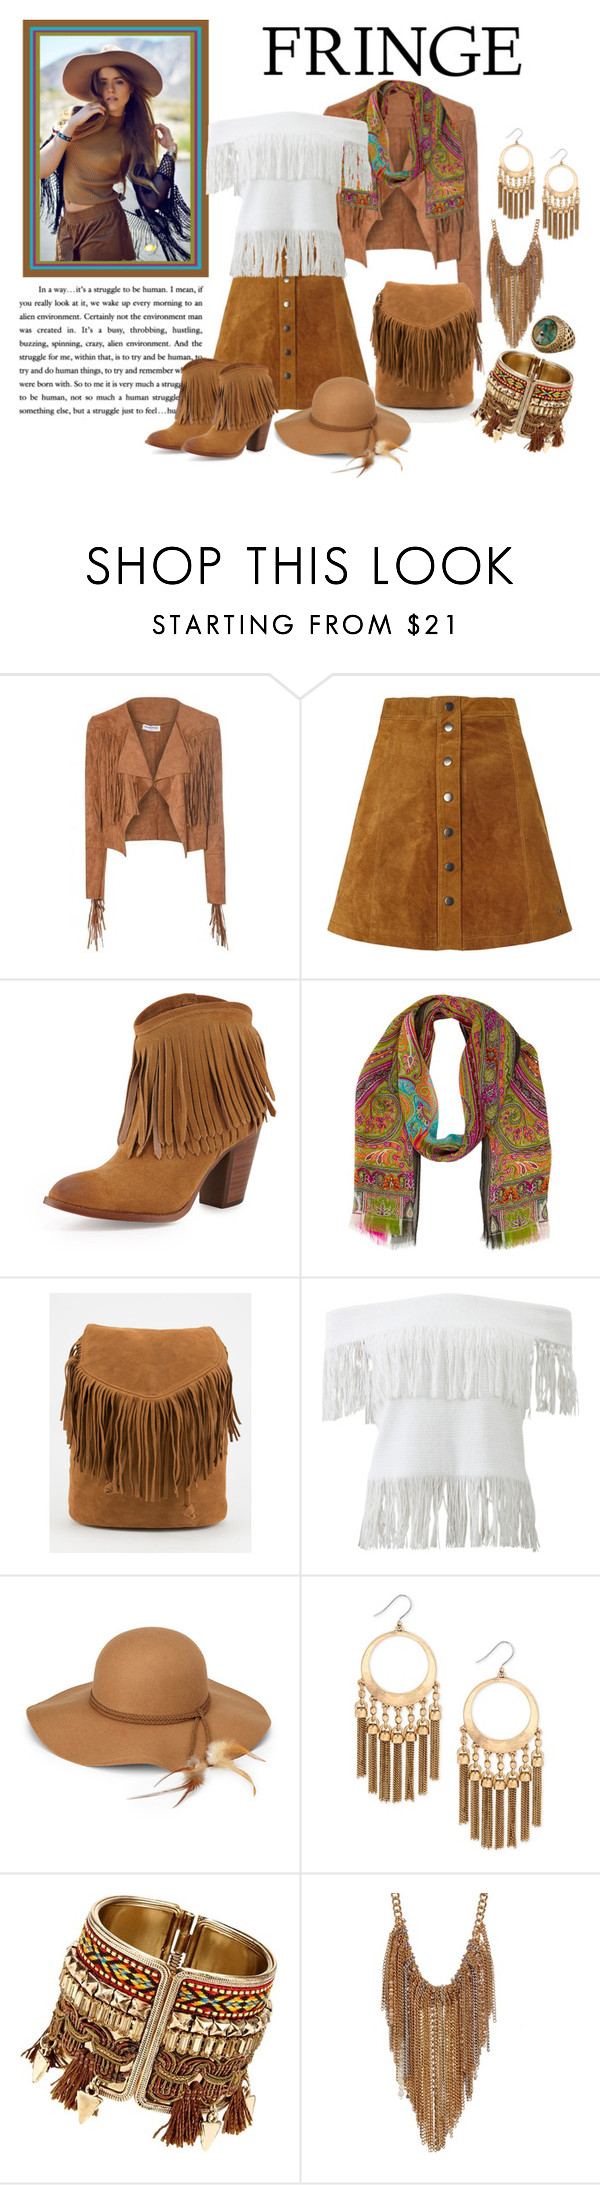 """Festival Trend-Fringe"" by penelopepoppins ❤ liked on Polyvore featuring Nümph, Frye, Etro, Jonathan Simkhai, Steve Madden, Lucky Brand, Kenneth Cole, Roberto Cavalli and fringe"